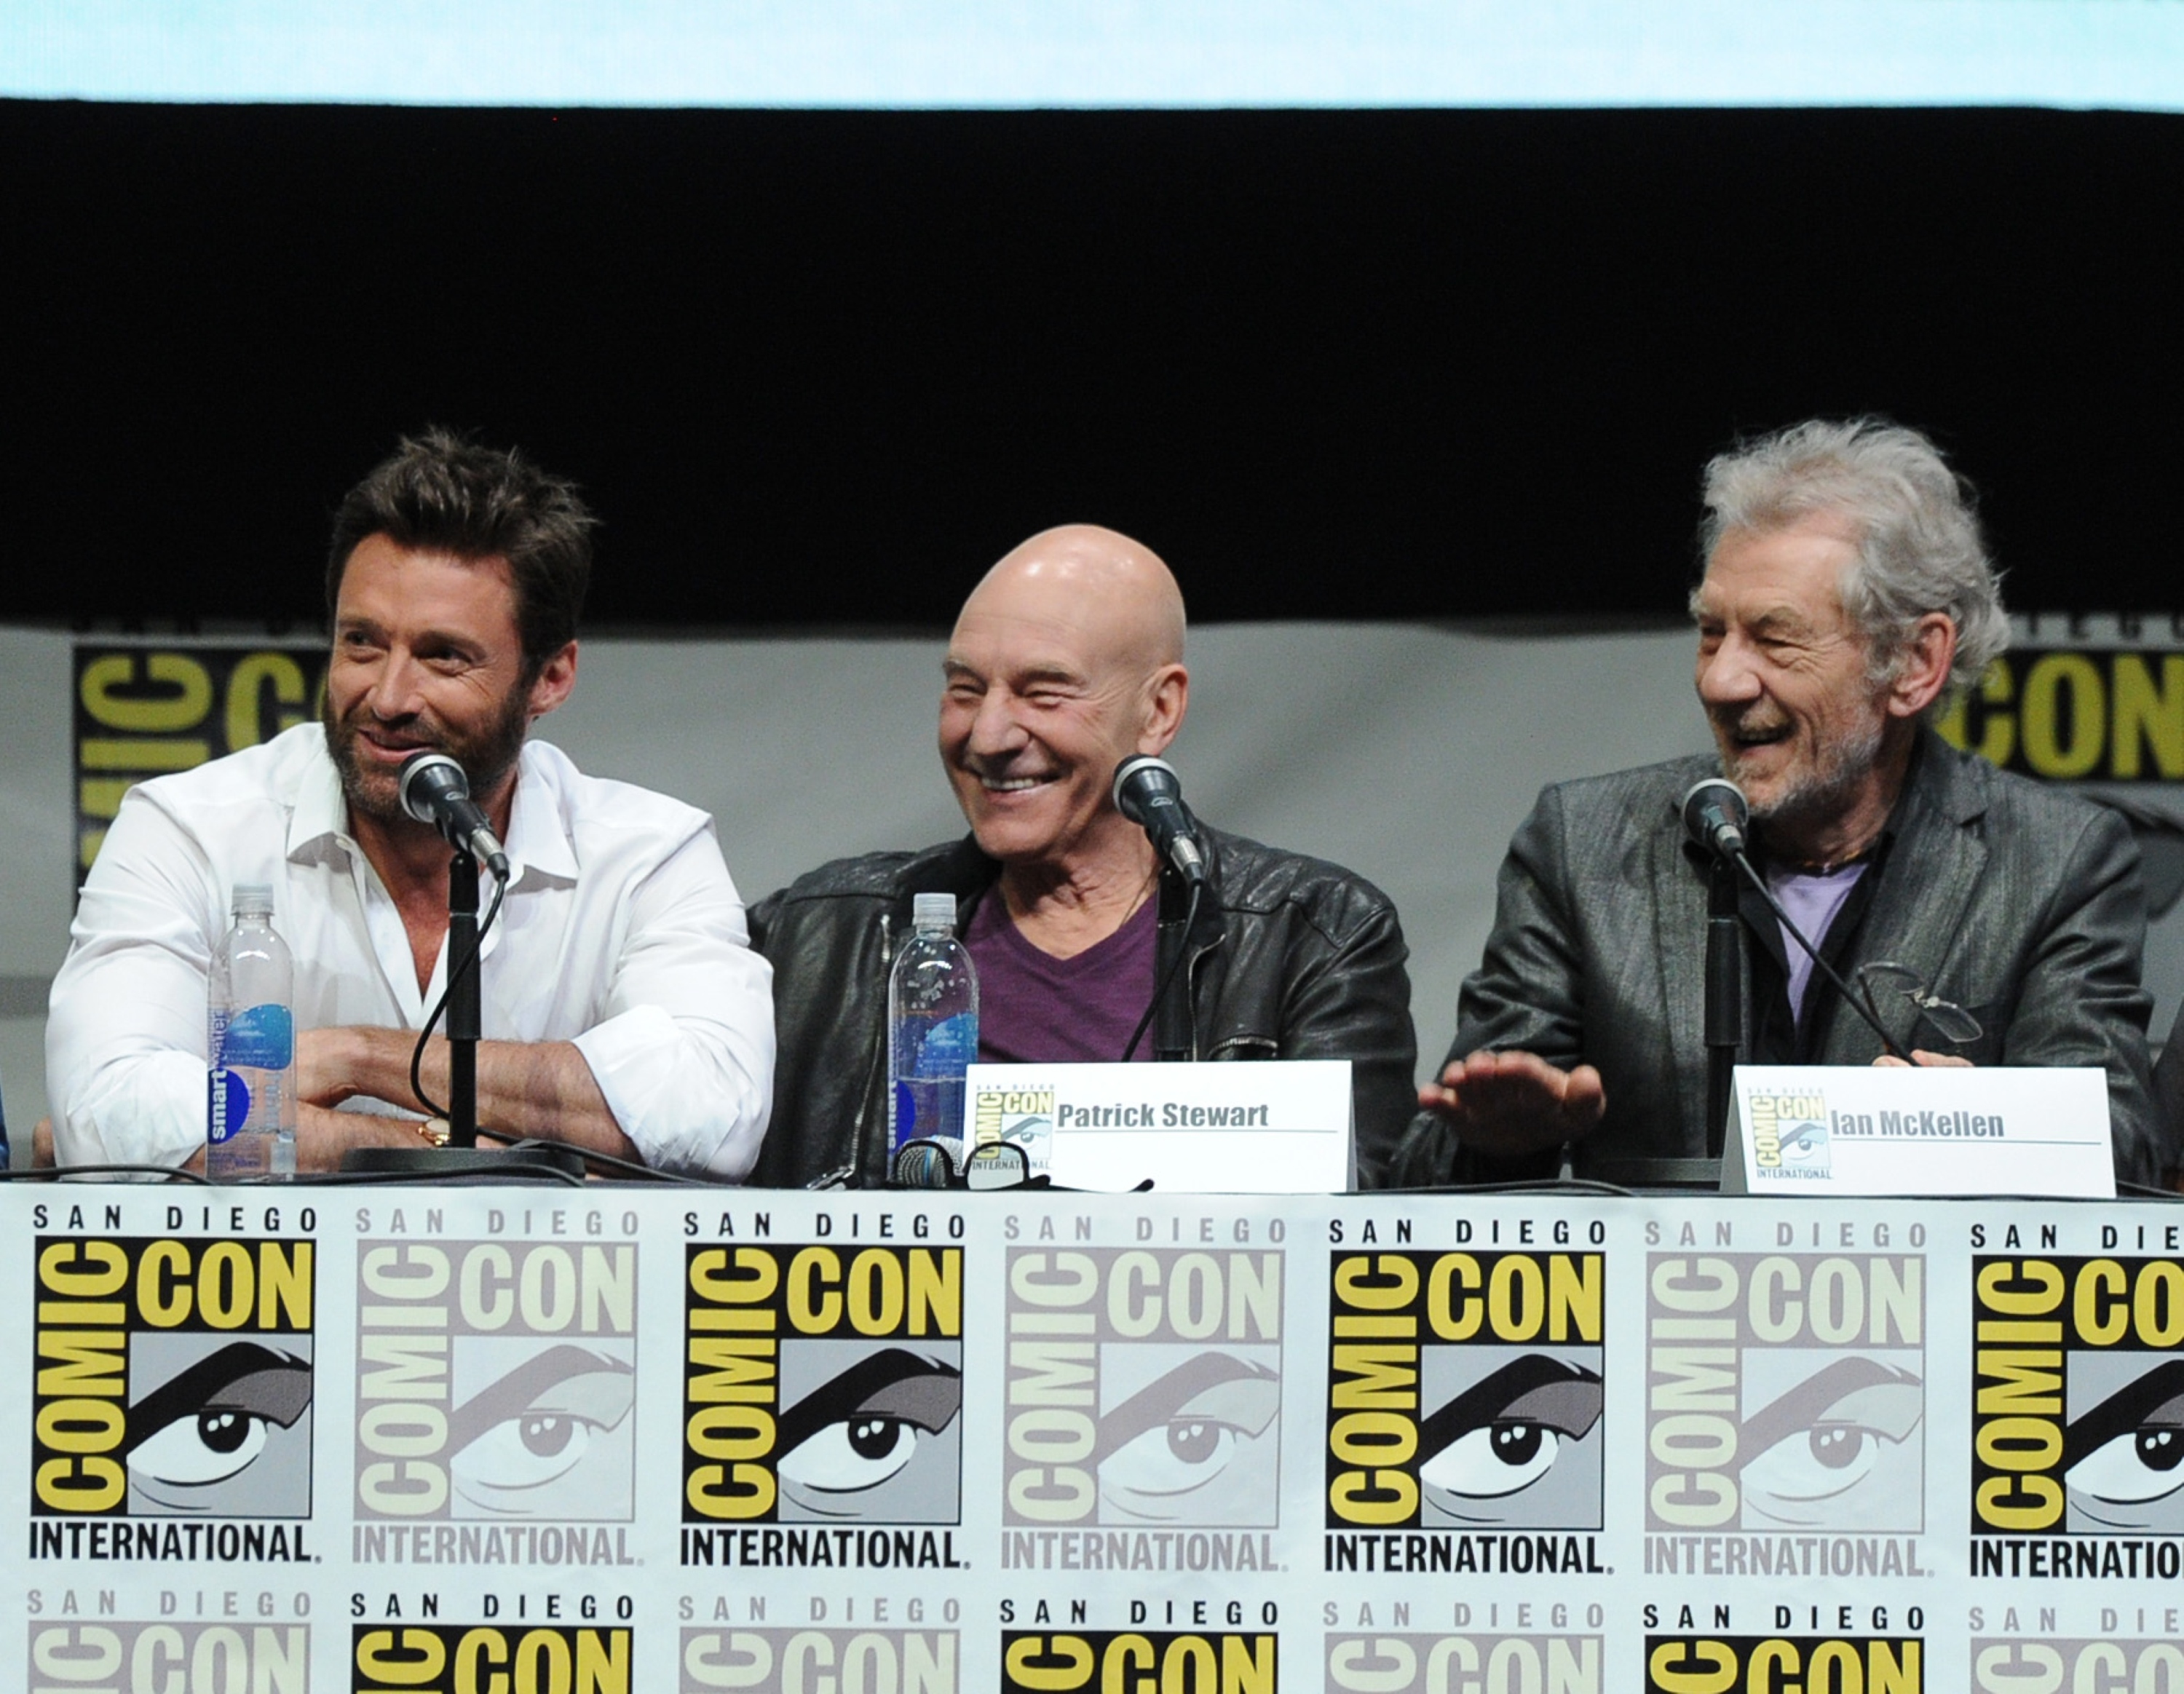 Hugh Jackman, Patrick Stewart & Ian McKellen at 2013 Comic-Con. Photo by Getty Images.